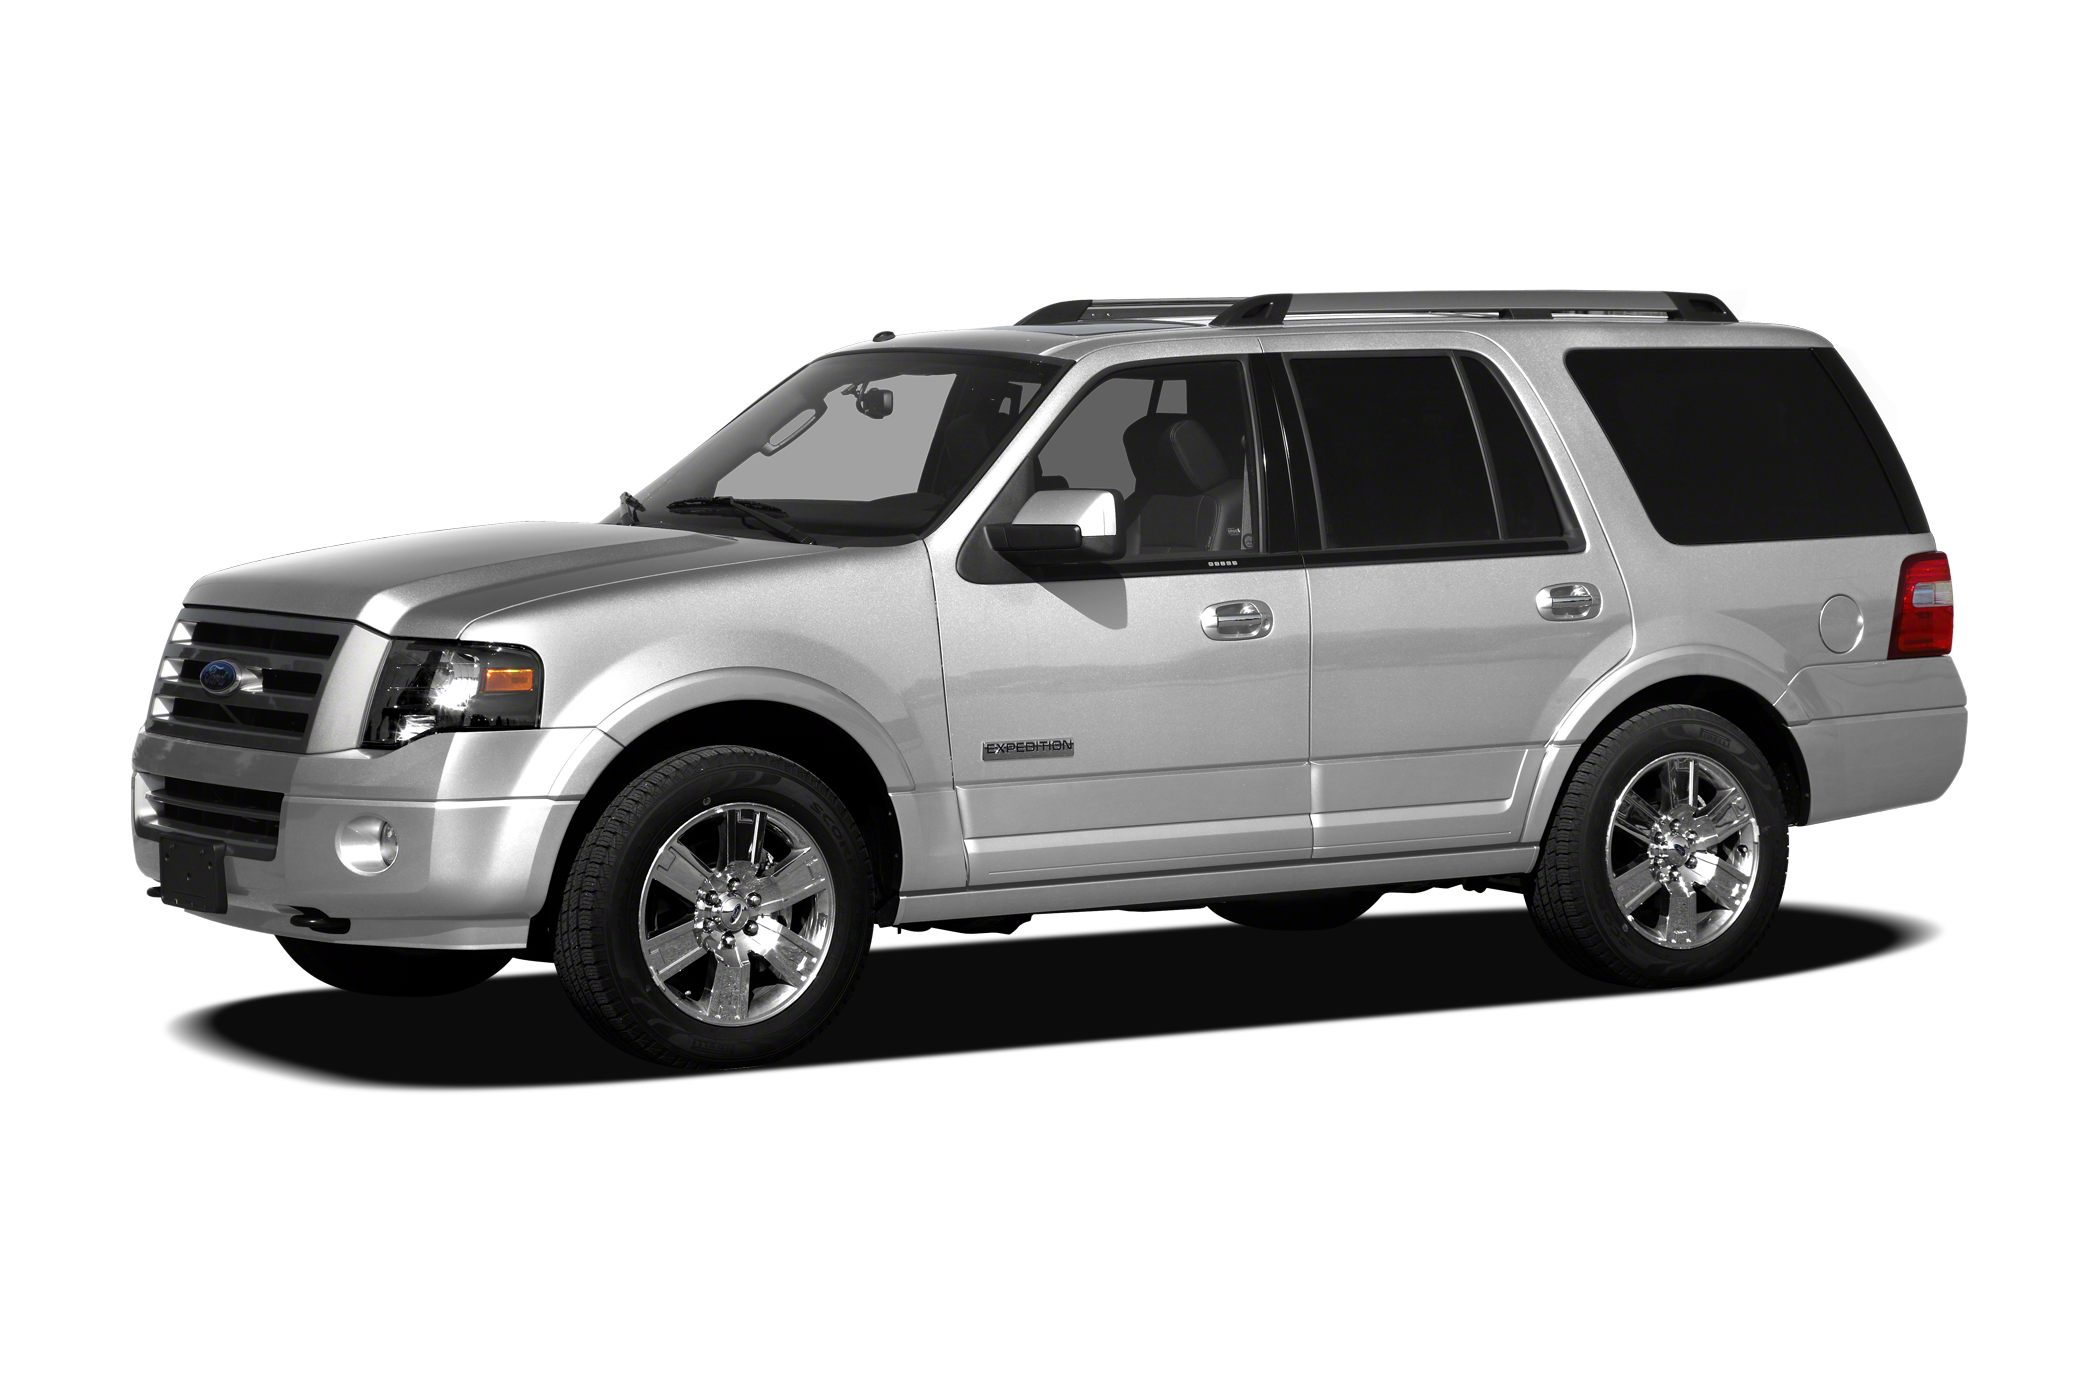 2011 Ford Expedition XL SUV for sale in Zanesville for $24,495 with 47,479 miles.